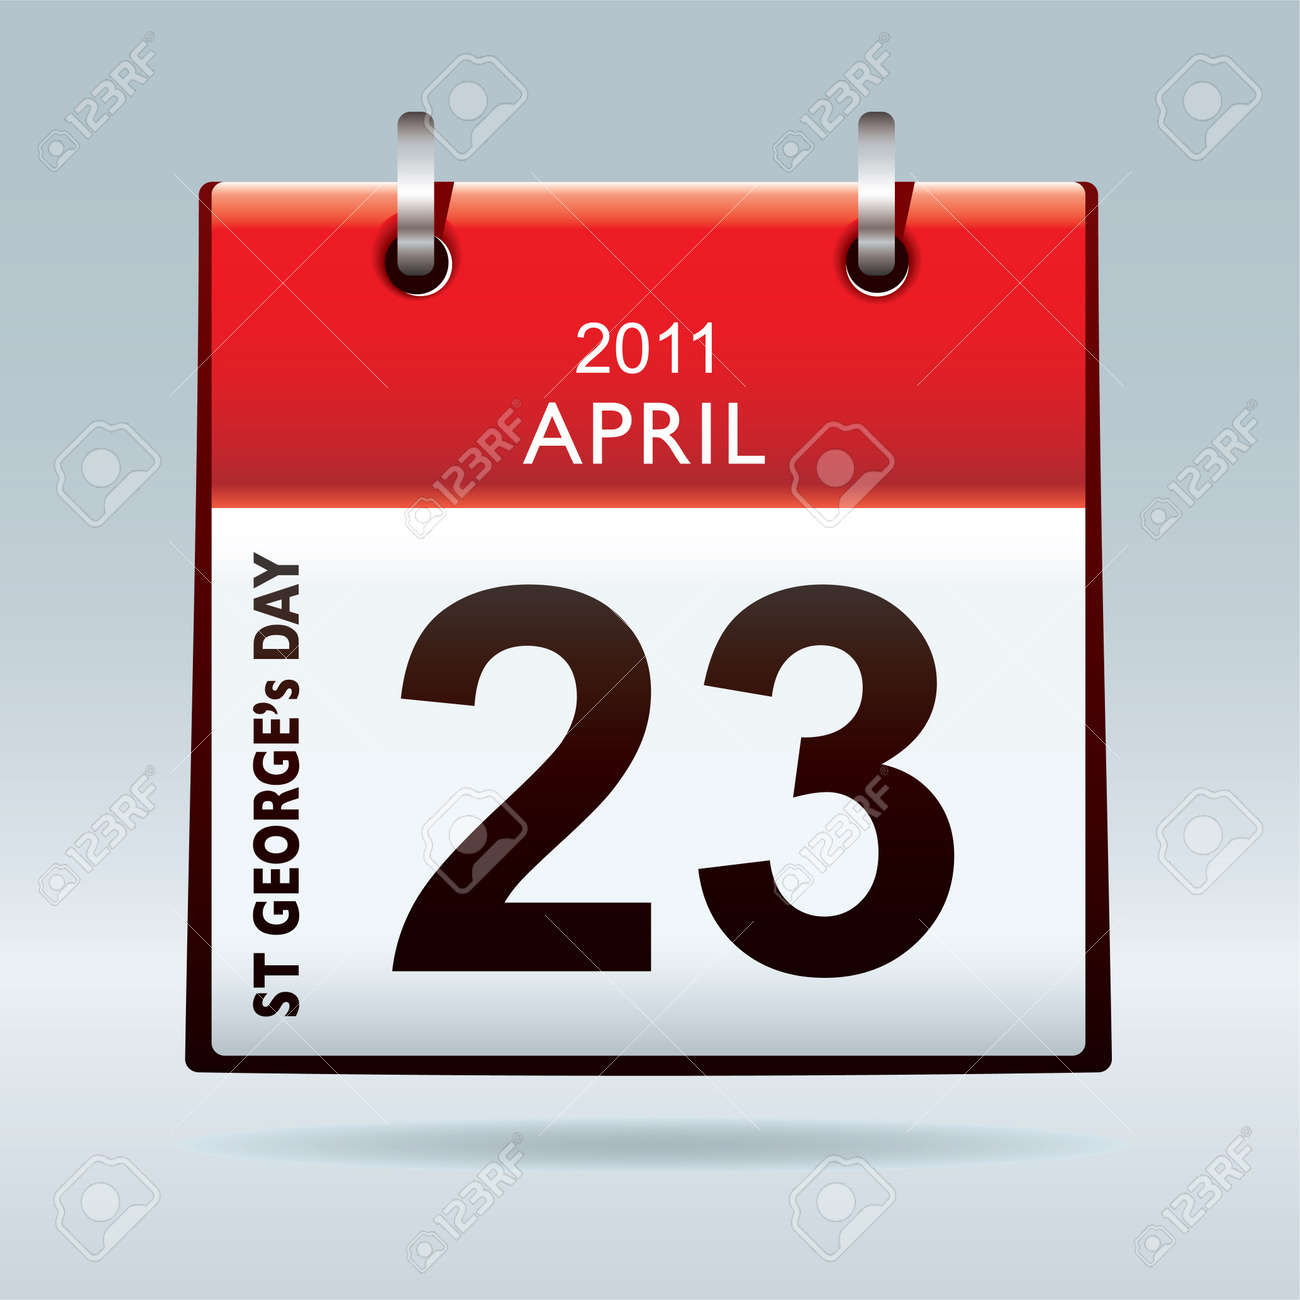 St georges day calendar icon bank holiday concept Stock Photo - 9359961